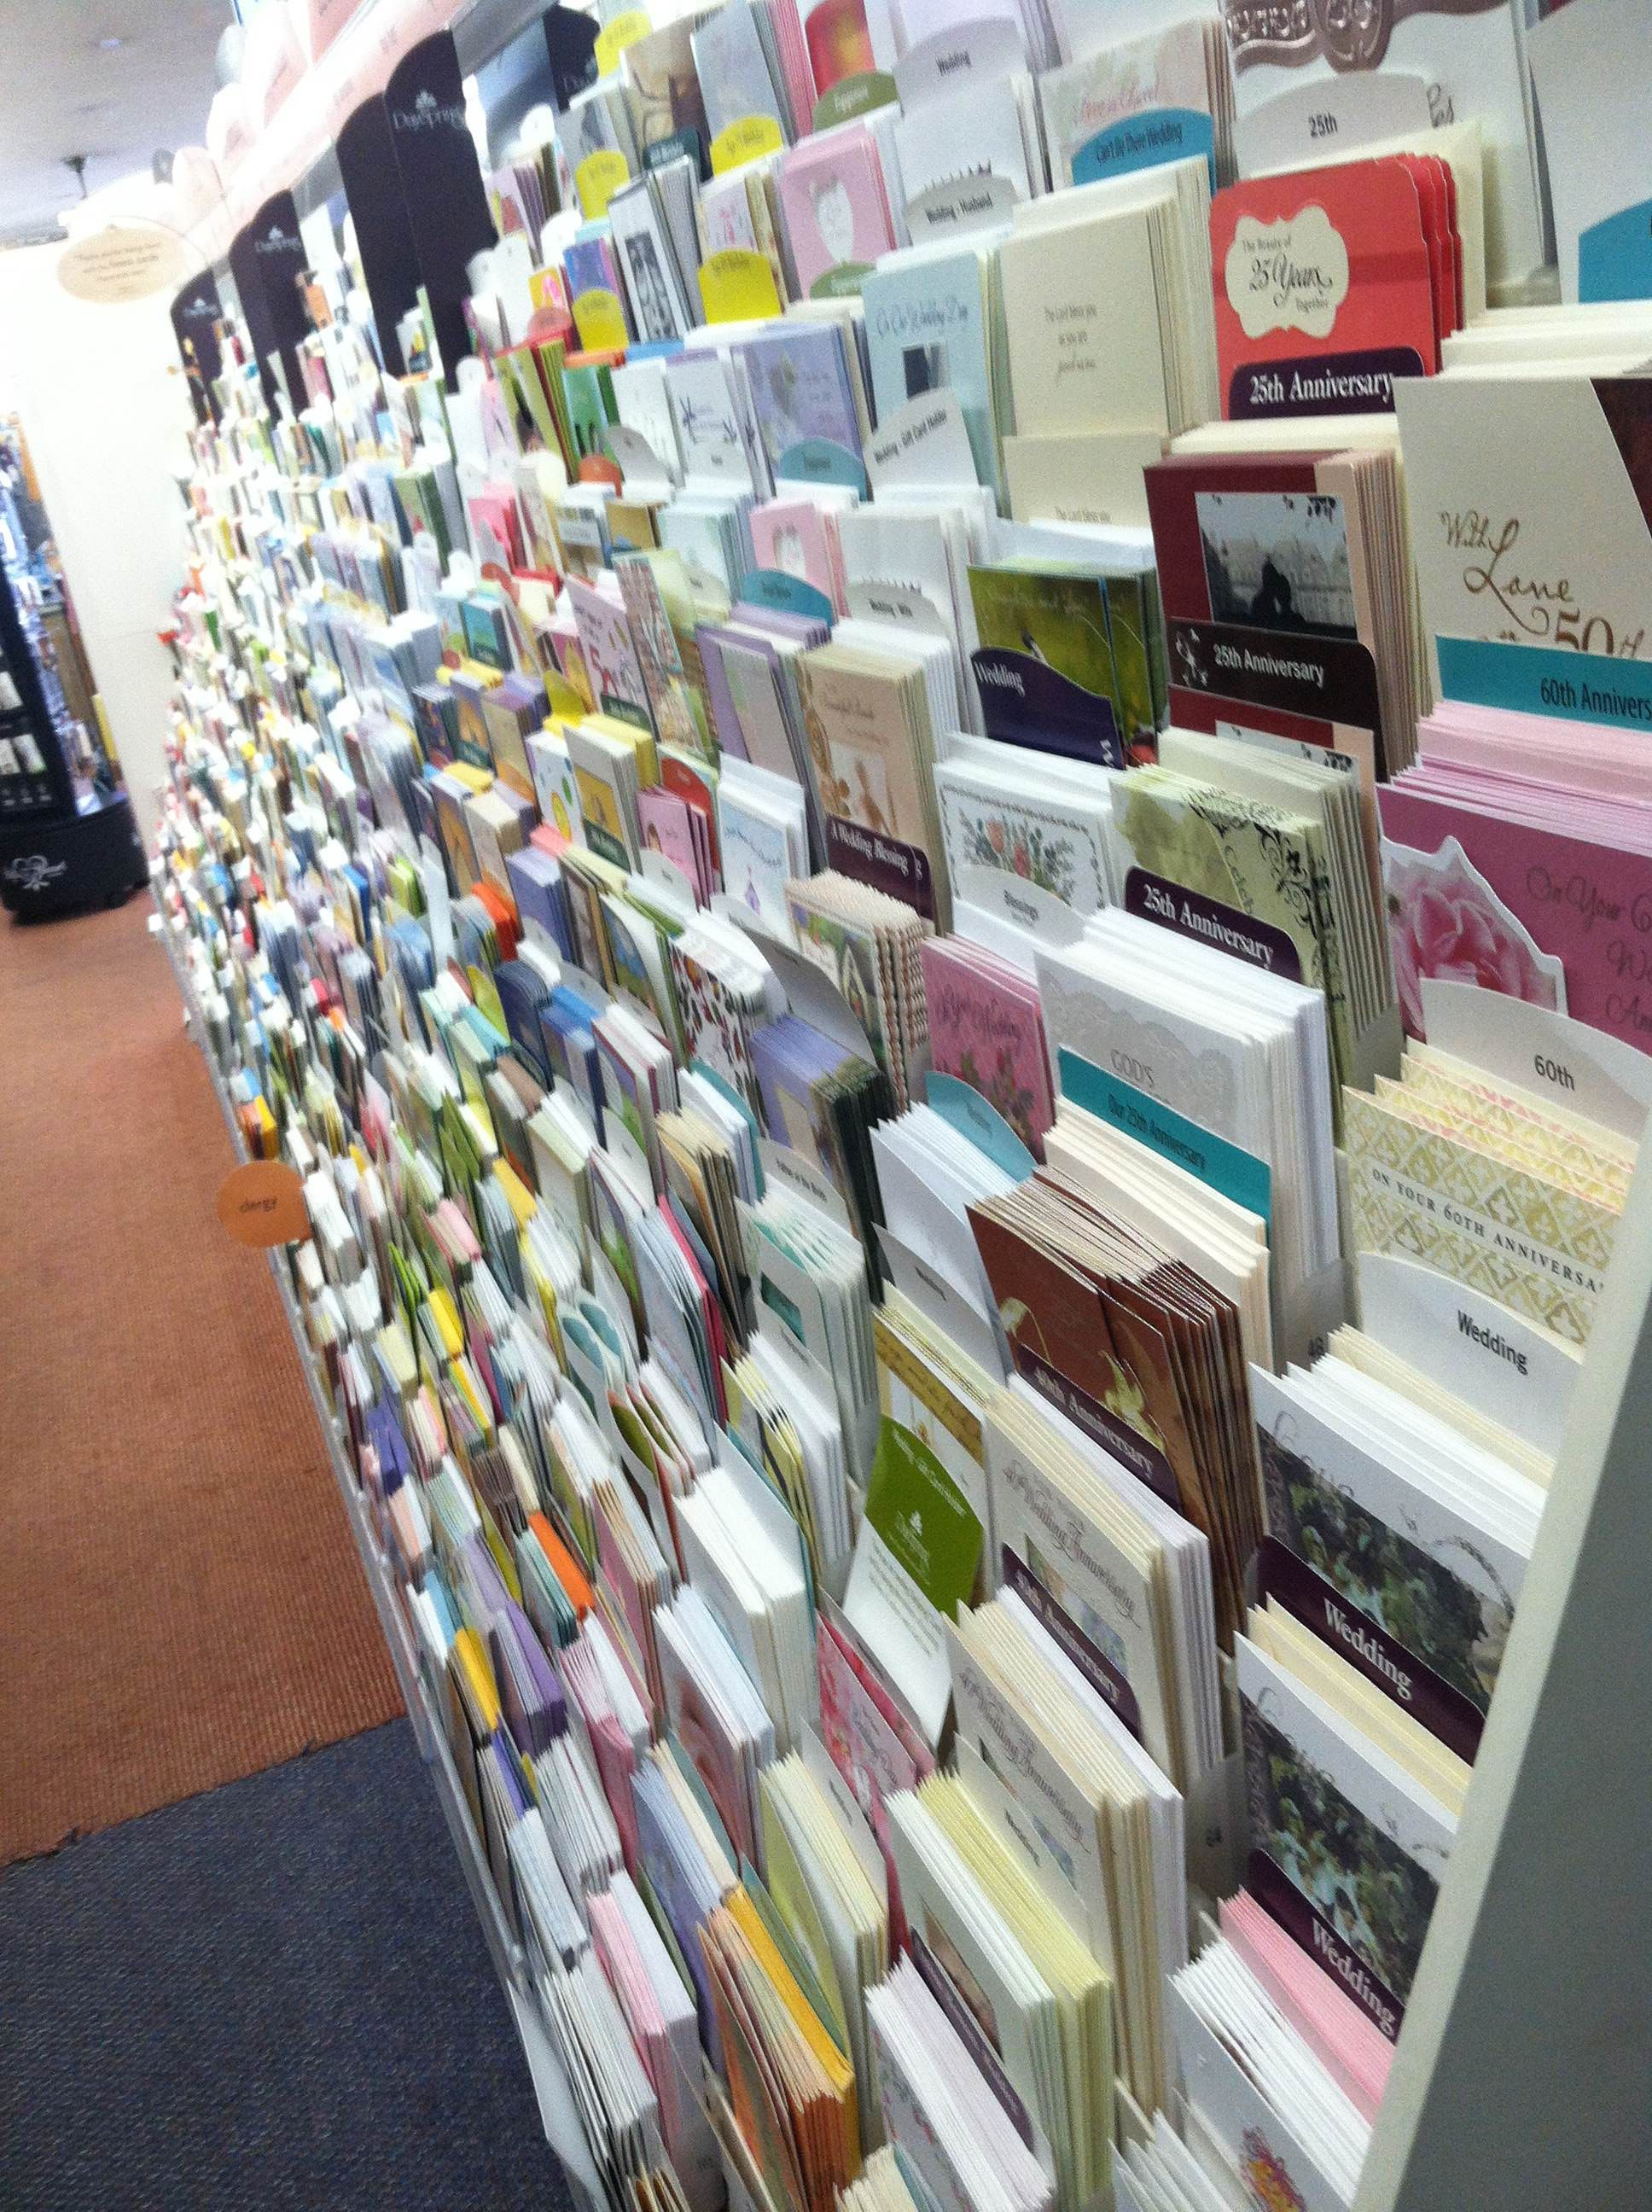 Holiday Birthday And Special Event Cards Starting As Low 99 Cents Think Local O Buy Be Bibles Hemet SanJacinto Temecula